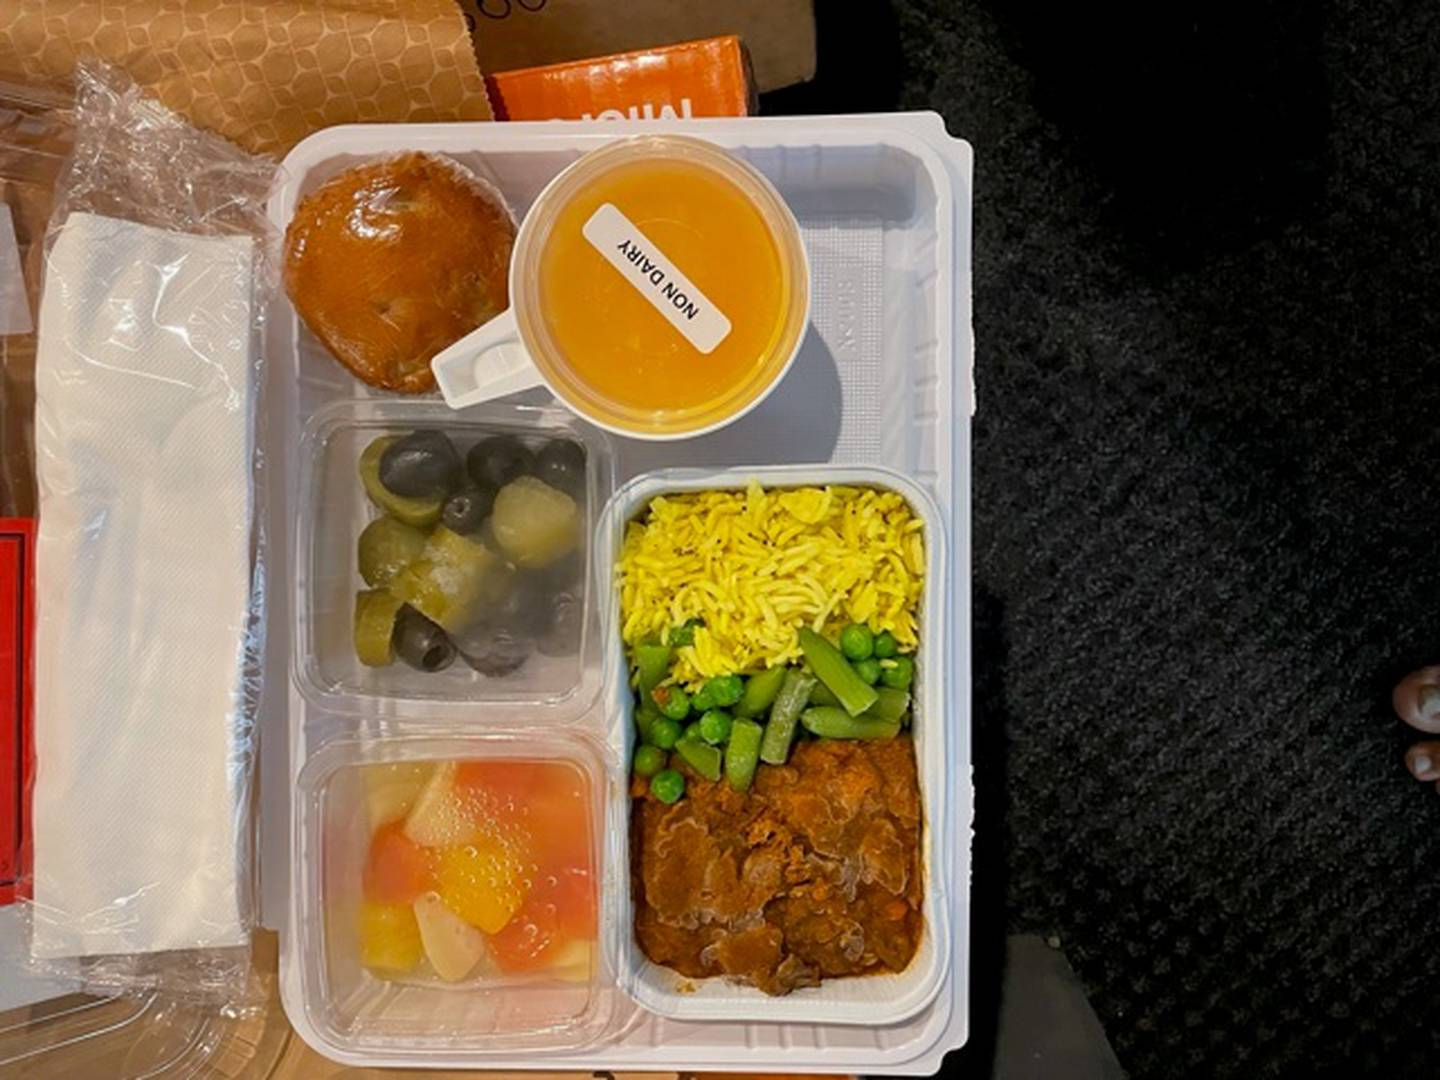 One of the frozen kosher meals Ilan Paz has received in Christchurch MIQ. Photo / Supplied